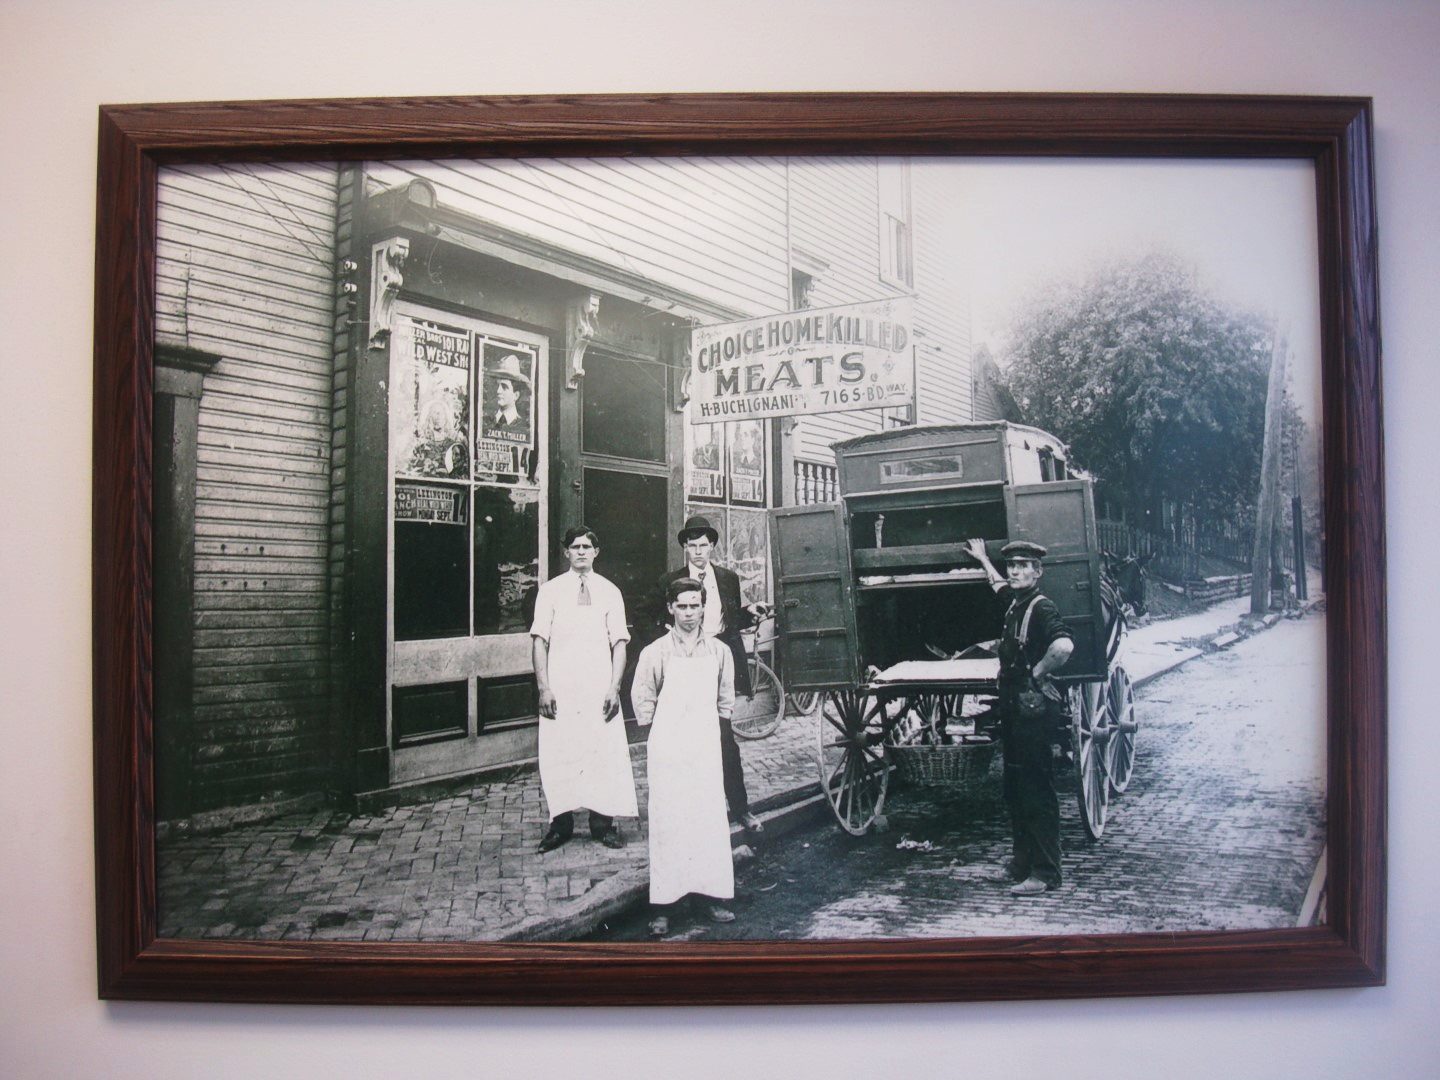 An Old Butchery Is Featured Wall Art At Spalding Bakery